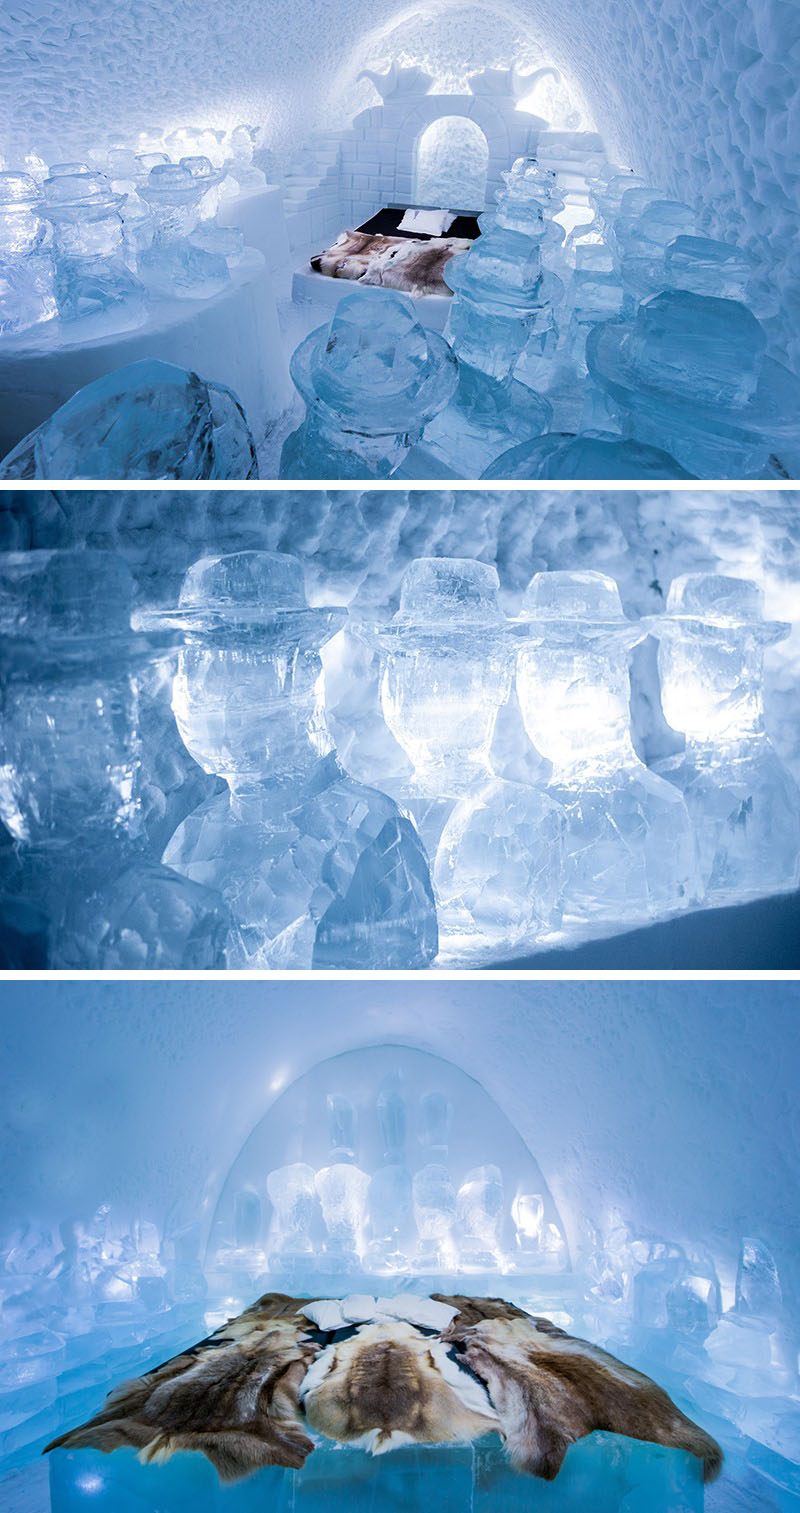 Art Suite – Momo's – designed by Lotta Lampa & Julia Gamborg Nielsen. Photography by Asaf Kliger | ICEHOTEL.